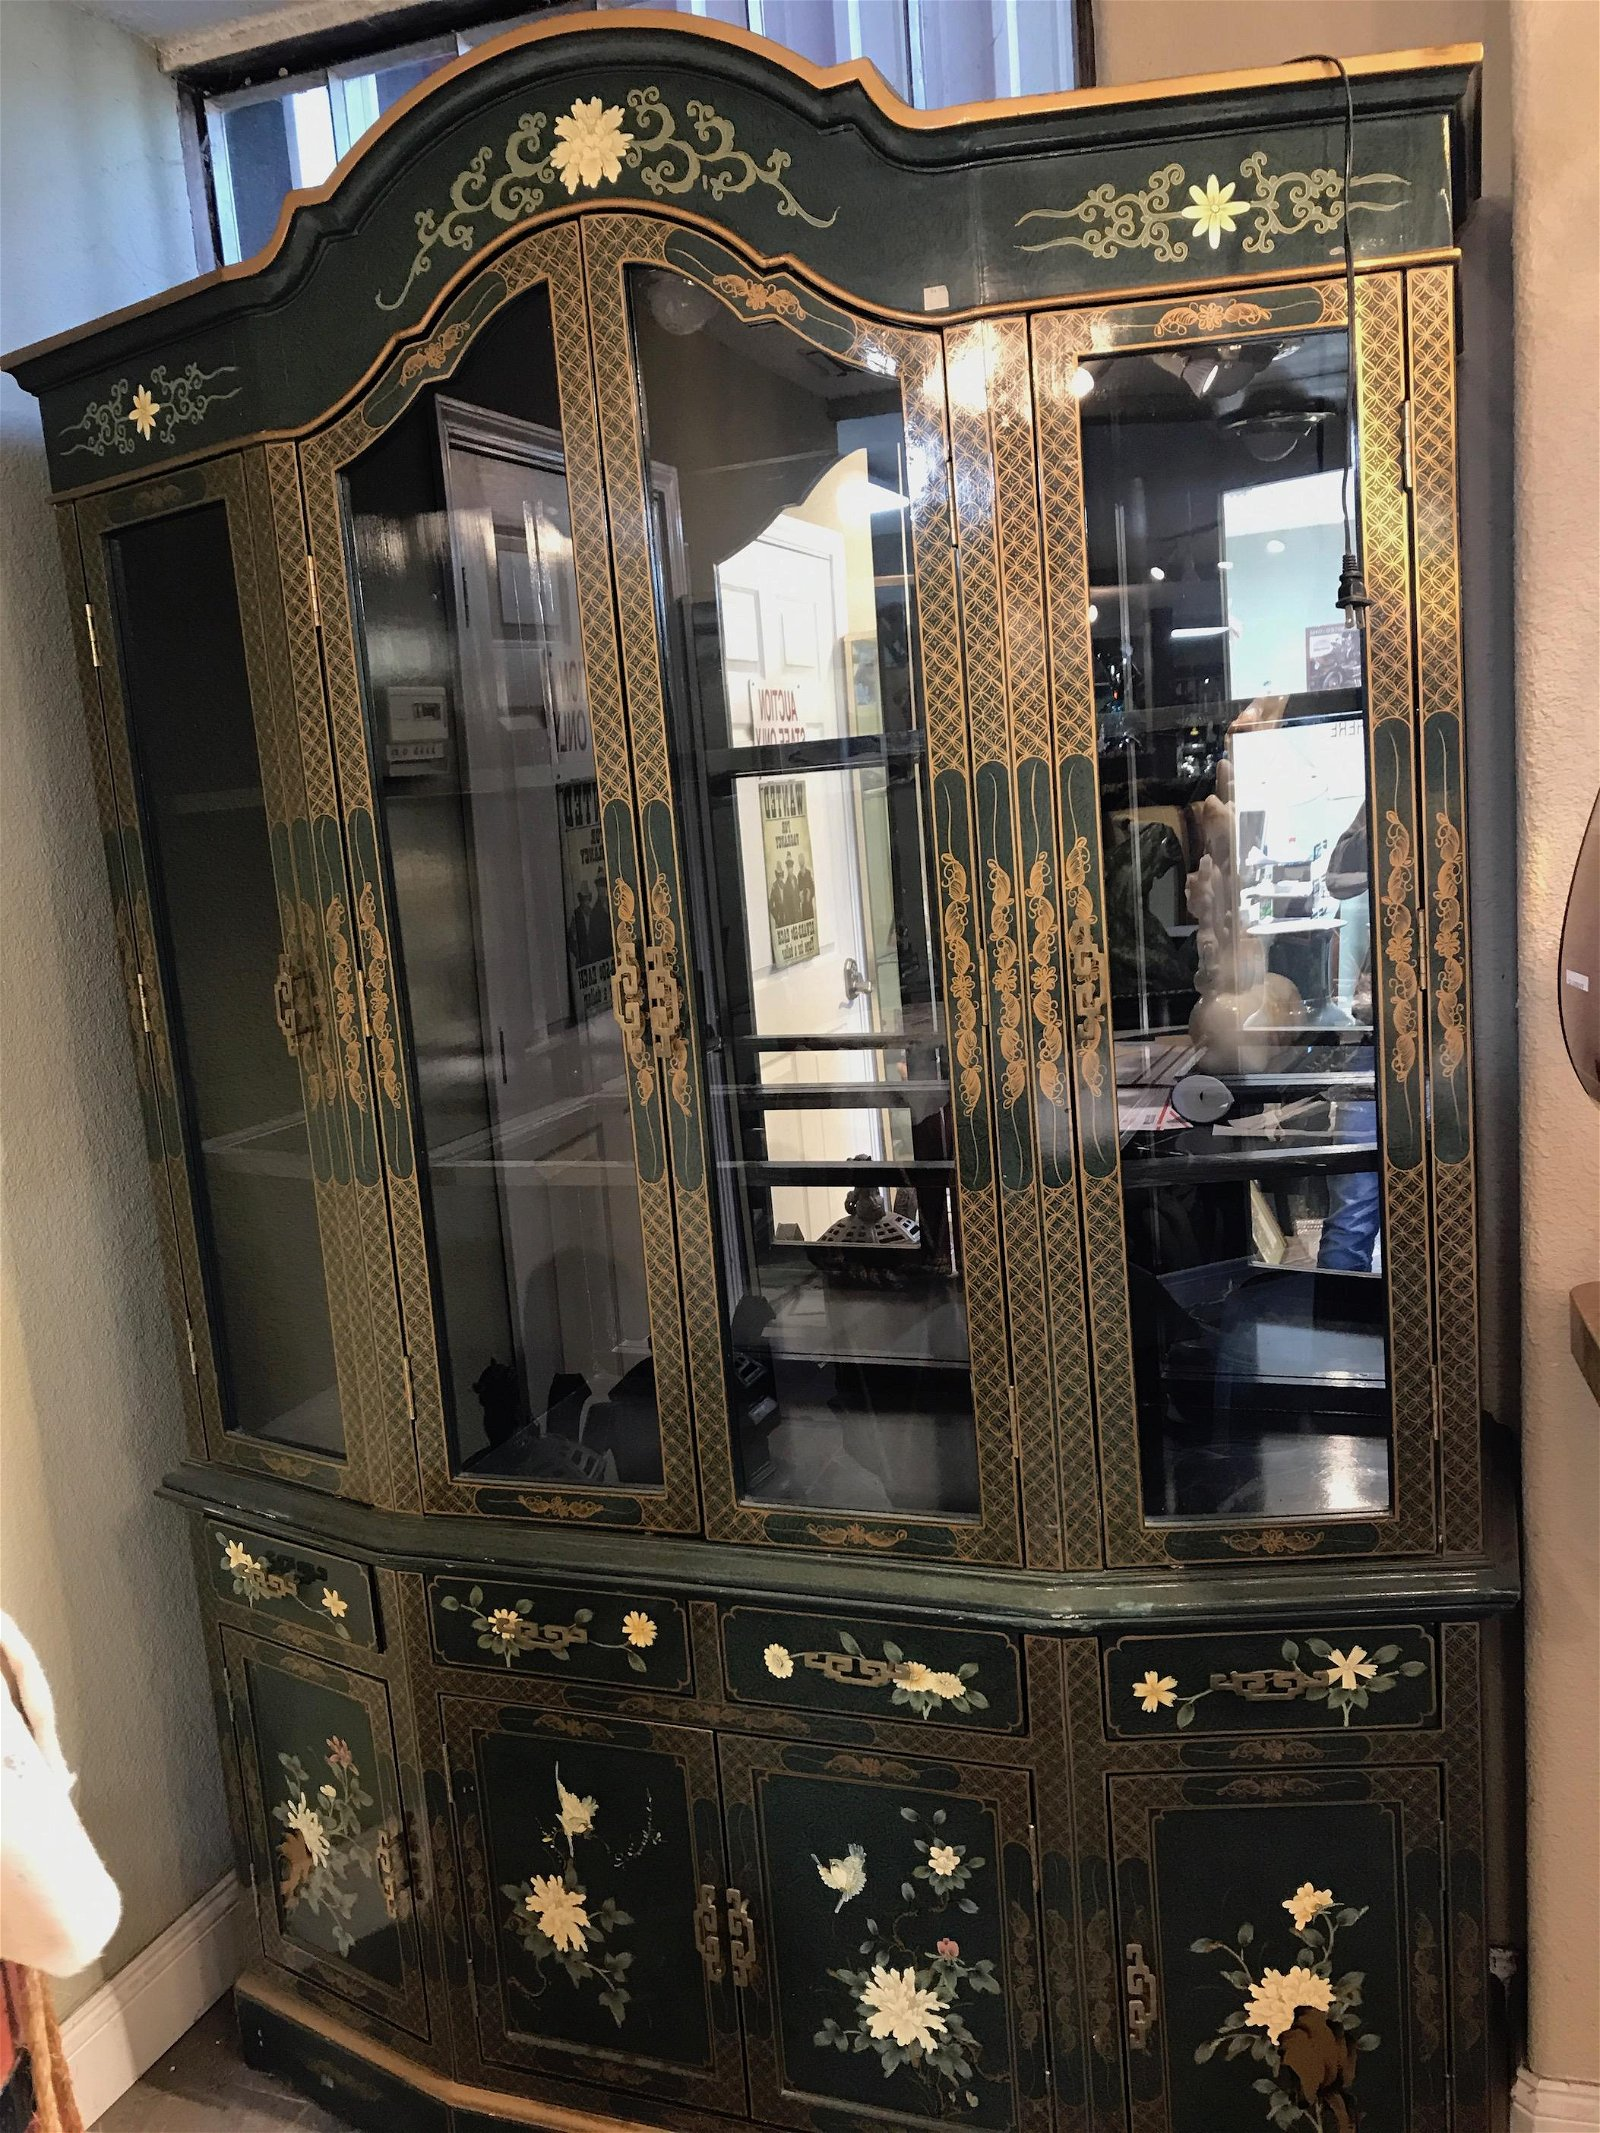 Hand-Painted Wood and Glass Cabinet w/ Floral Design